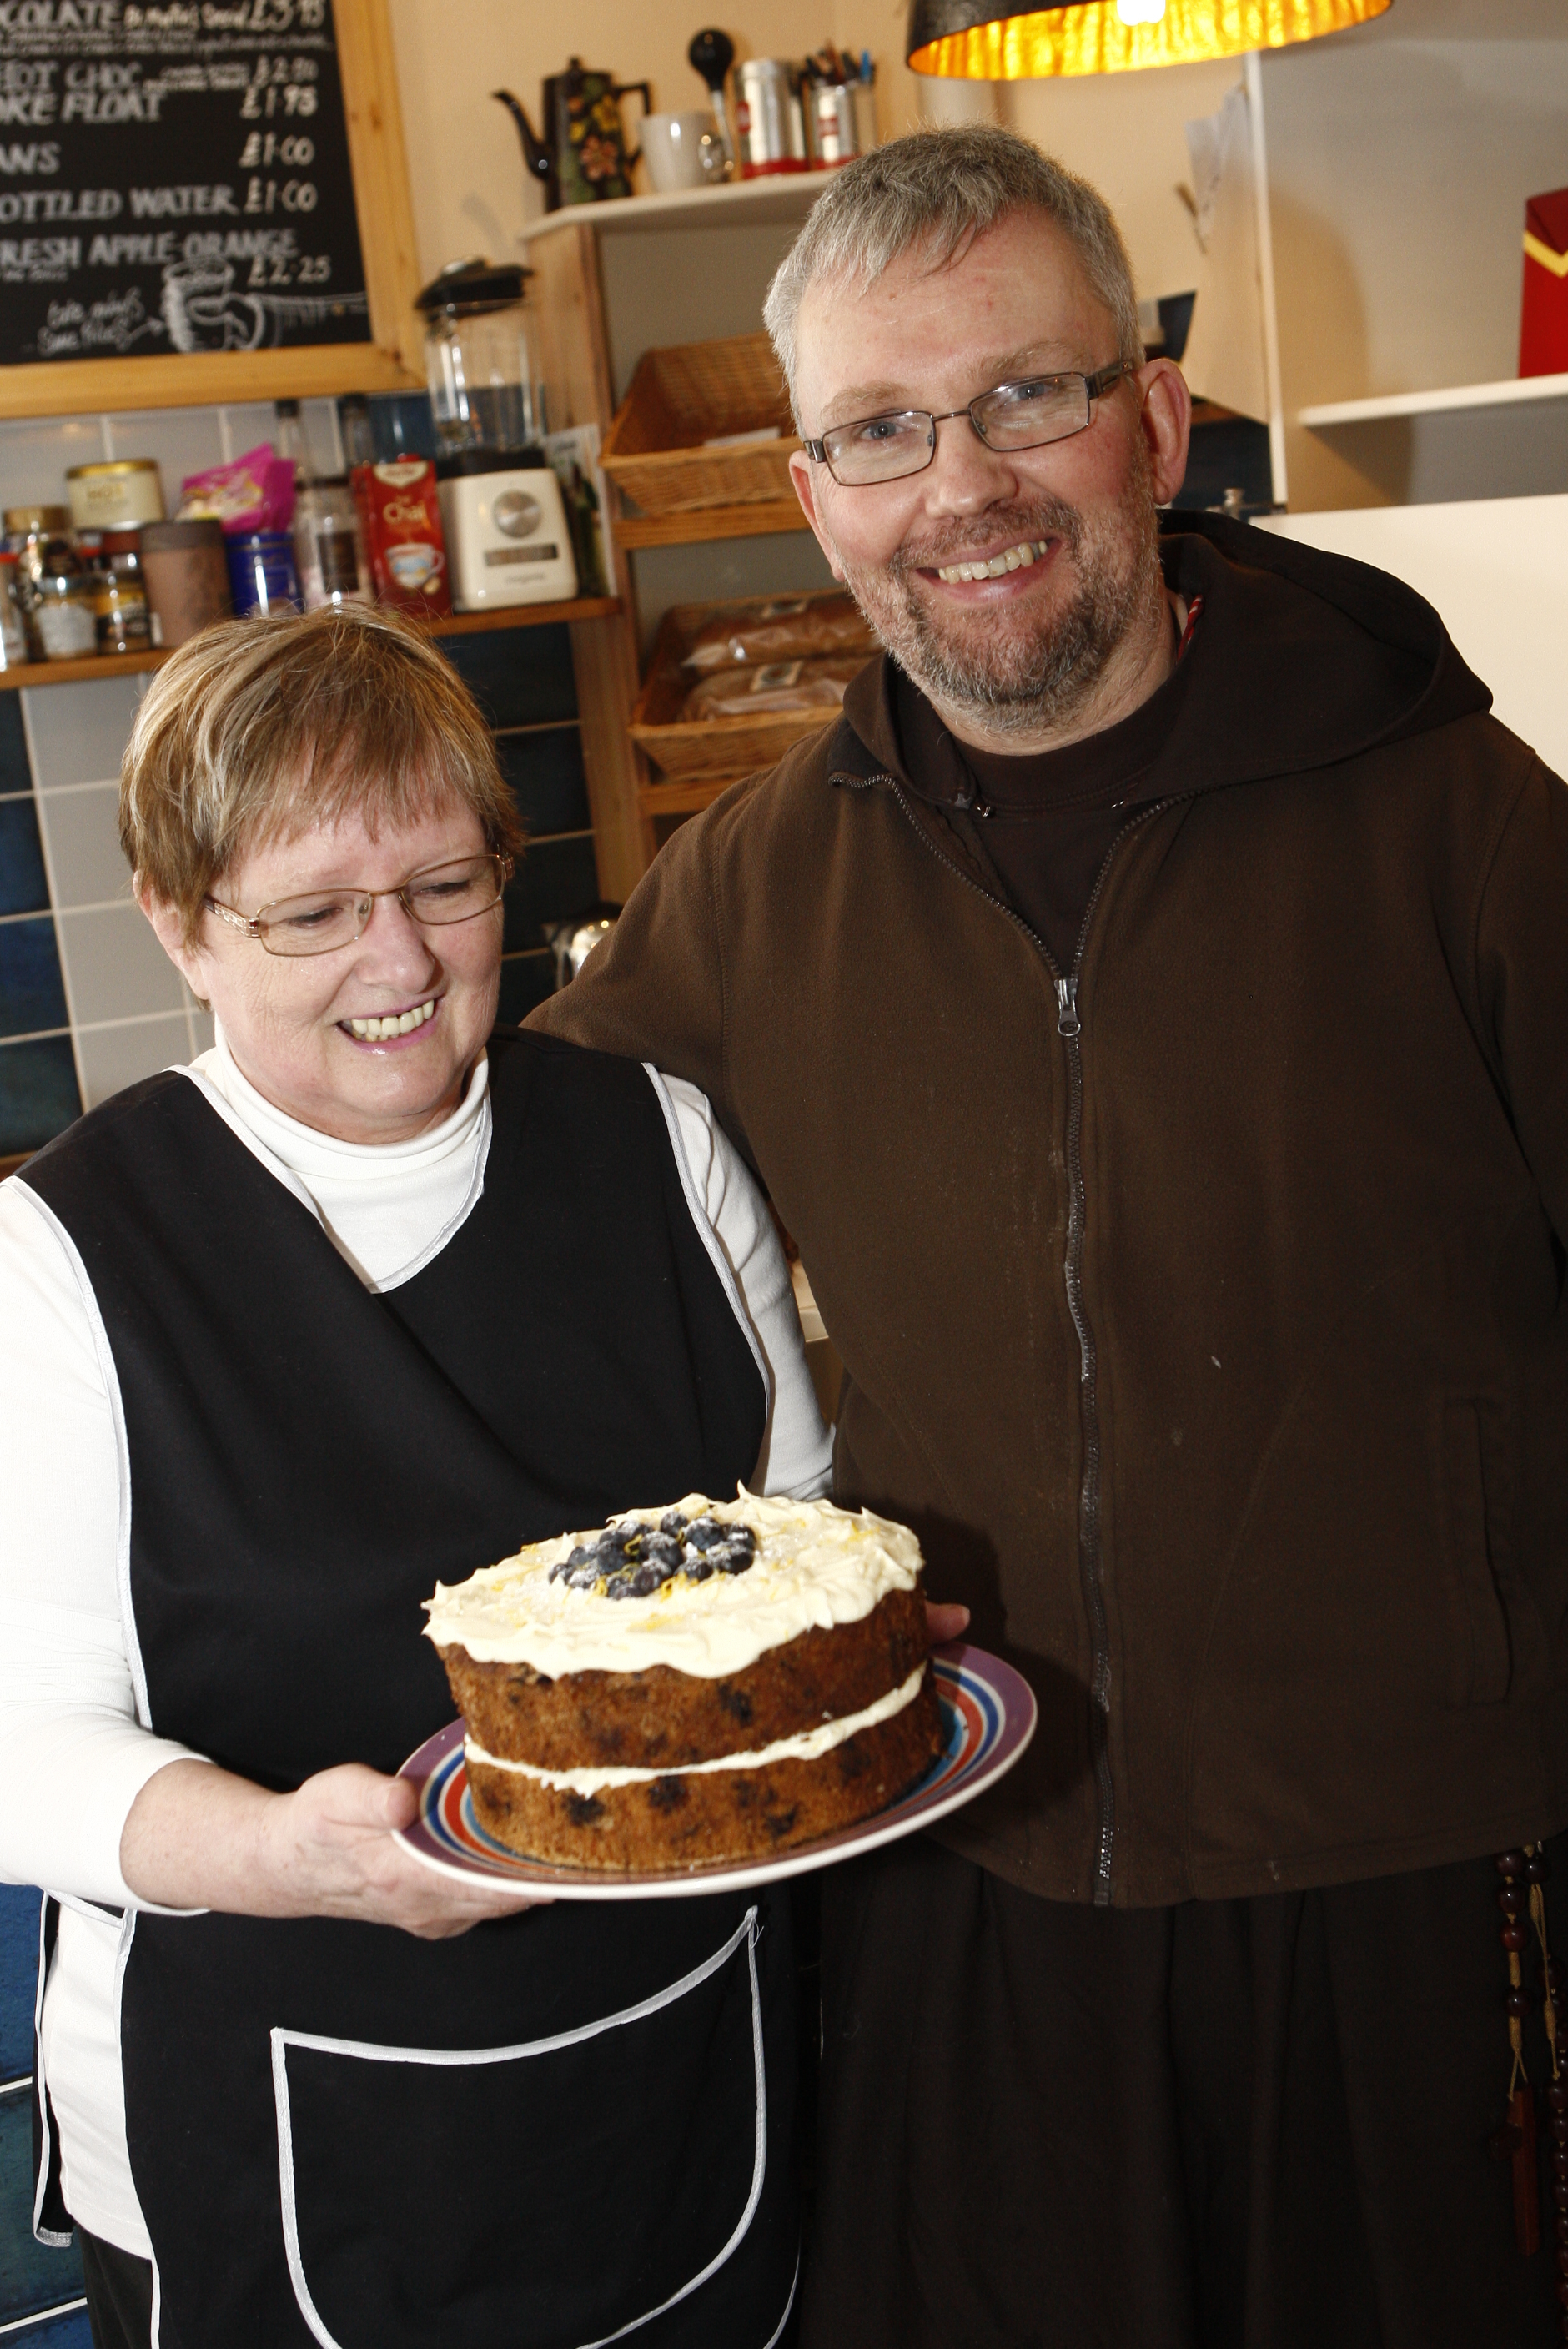 Father John Delaney dropping by for a piece ofJan's Blueberry and Zucchini sponge cake. Great cake Jan..